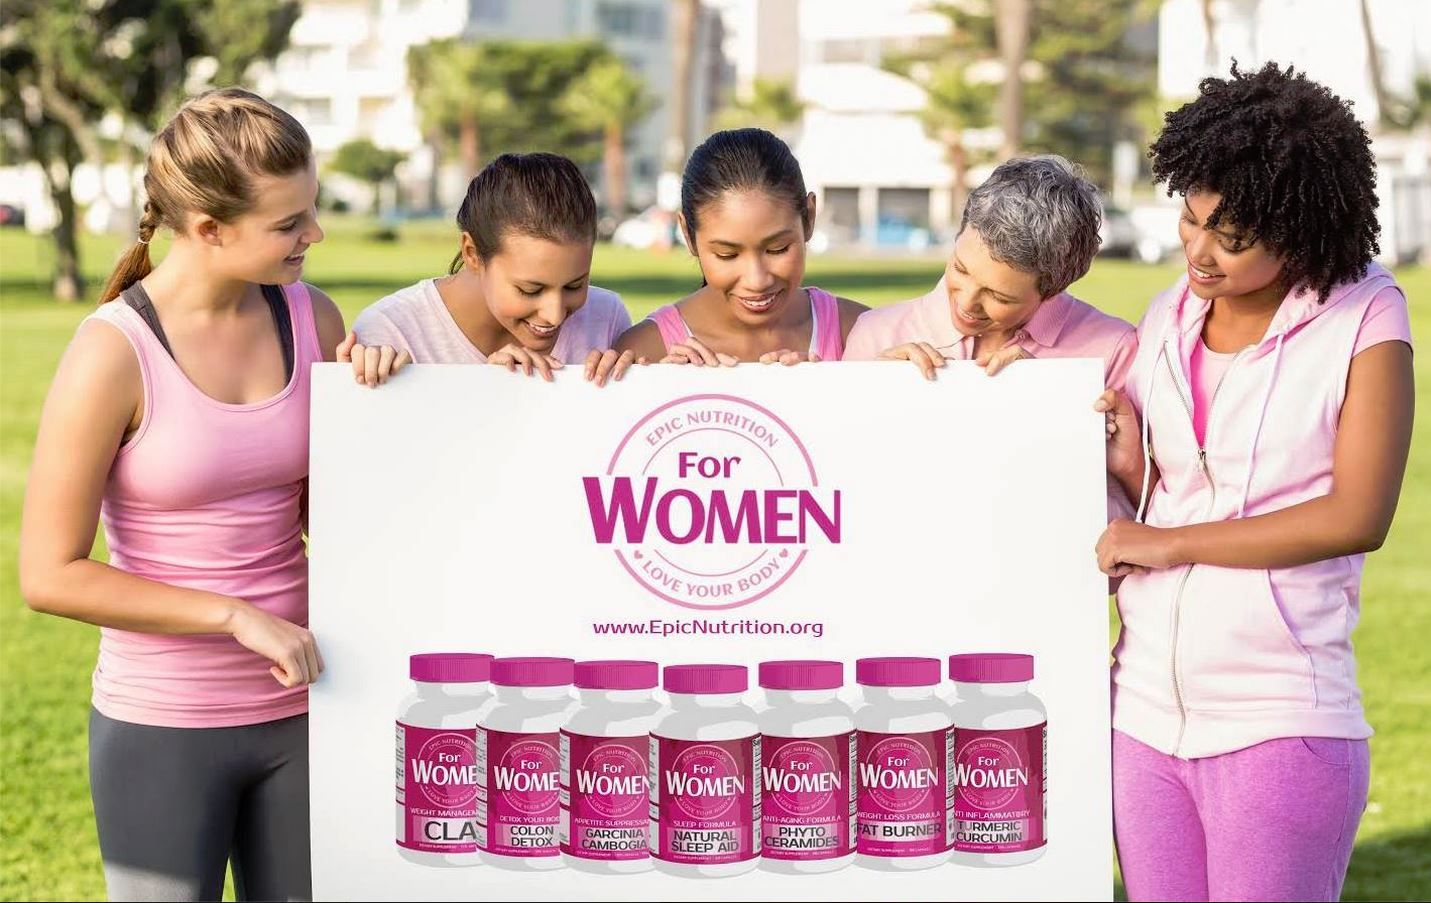 Epic nutrition for women helps you support your beauty